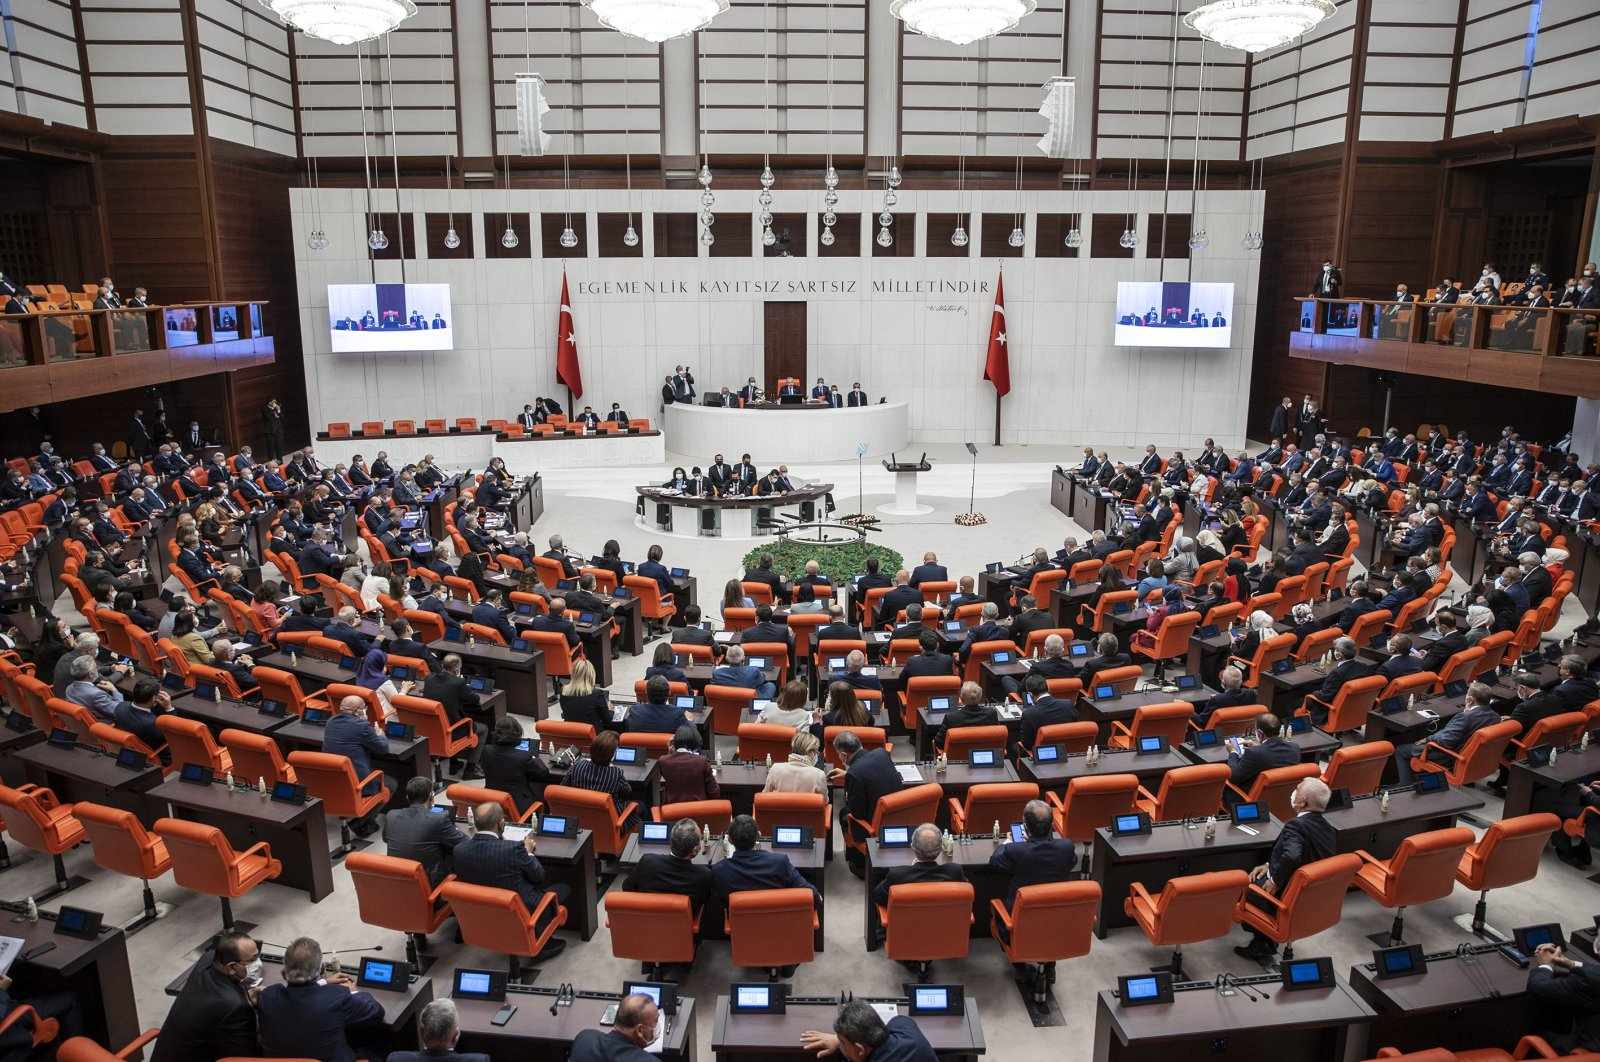 The Turkish Grand National Assembly (TBMM) convenes for the opening ceremony of the fifth legislative year of its 27th term, the capital Ankara, Turkey, Oct. 1, 2021. (AA Photo)